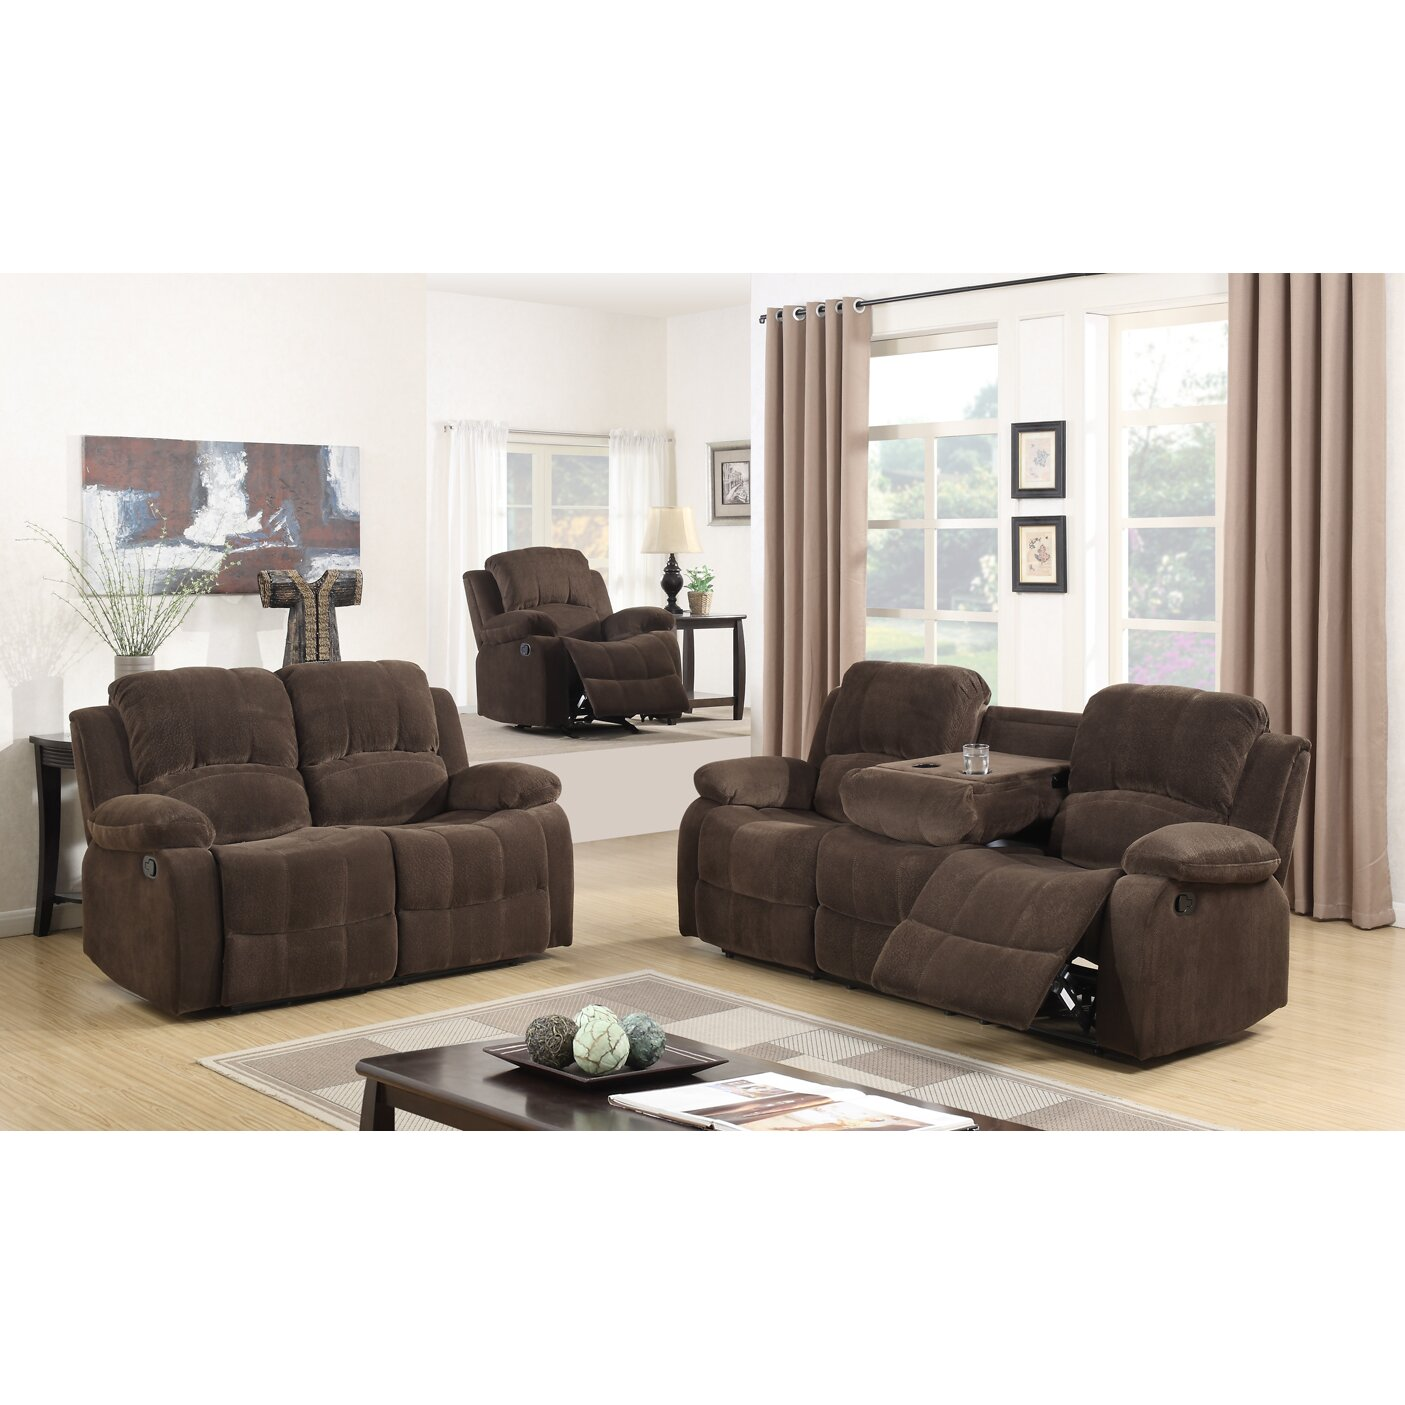 Livingroomfurniture: Best Quality Furniture Fabric 3 Piece Recliner Living Room